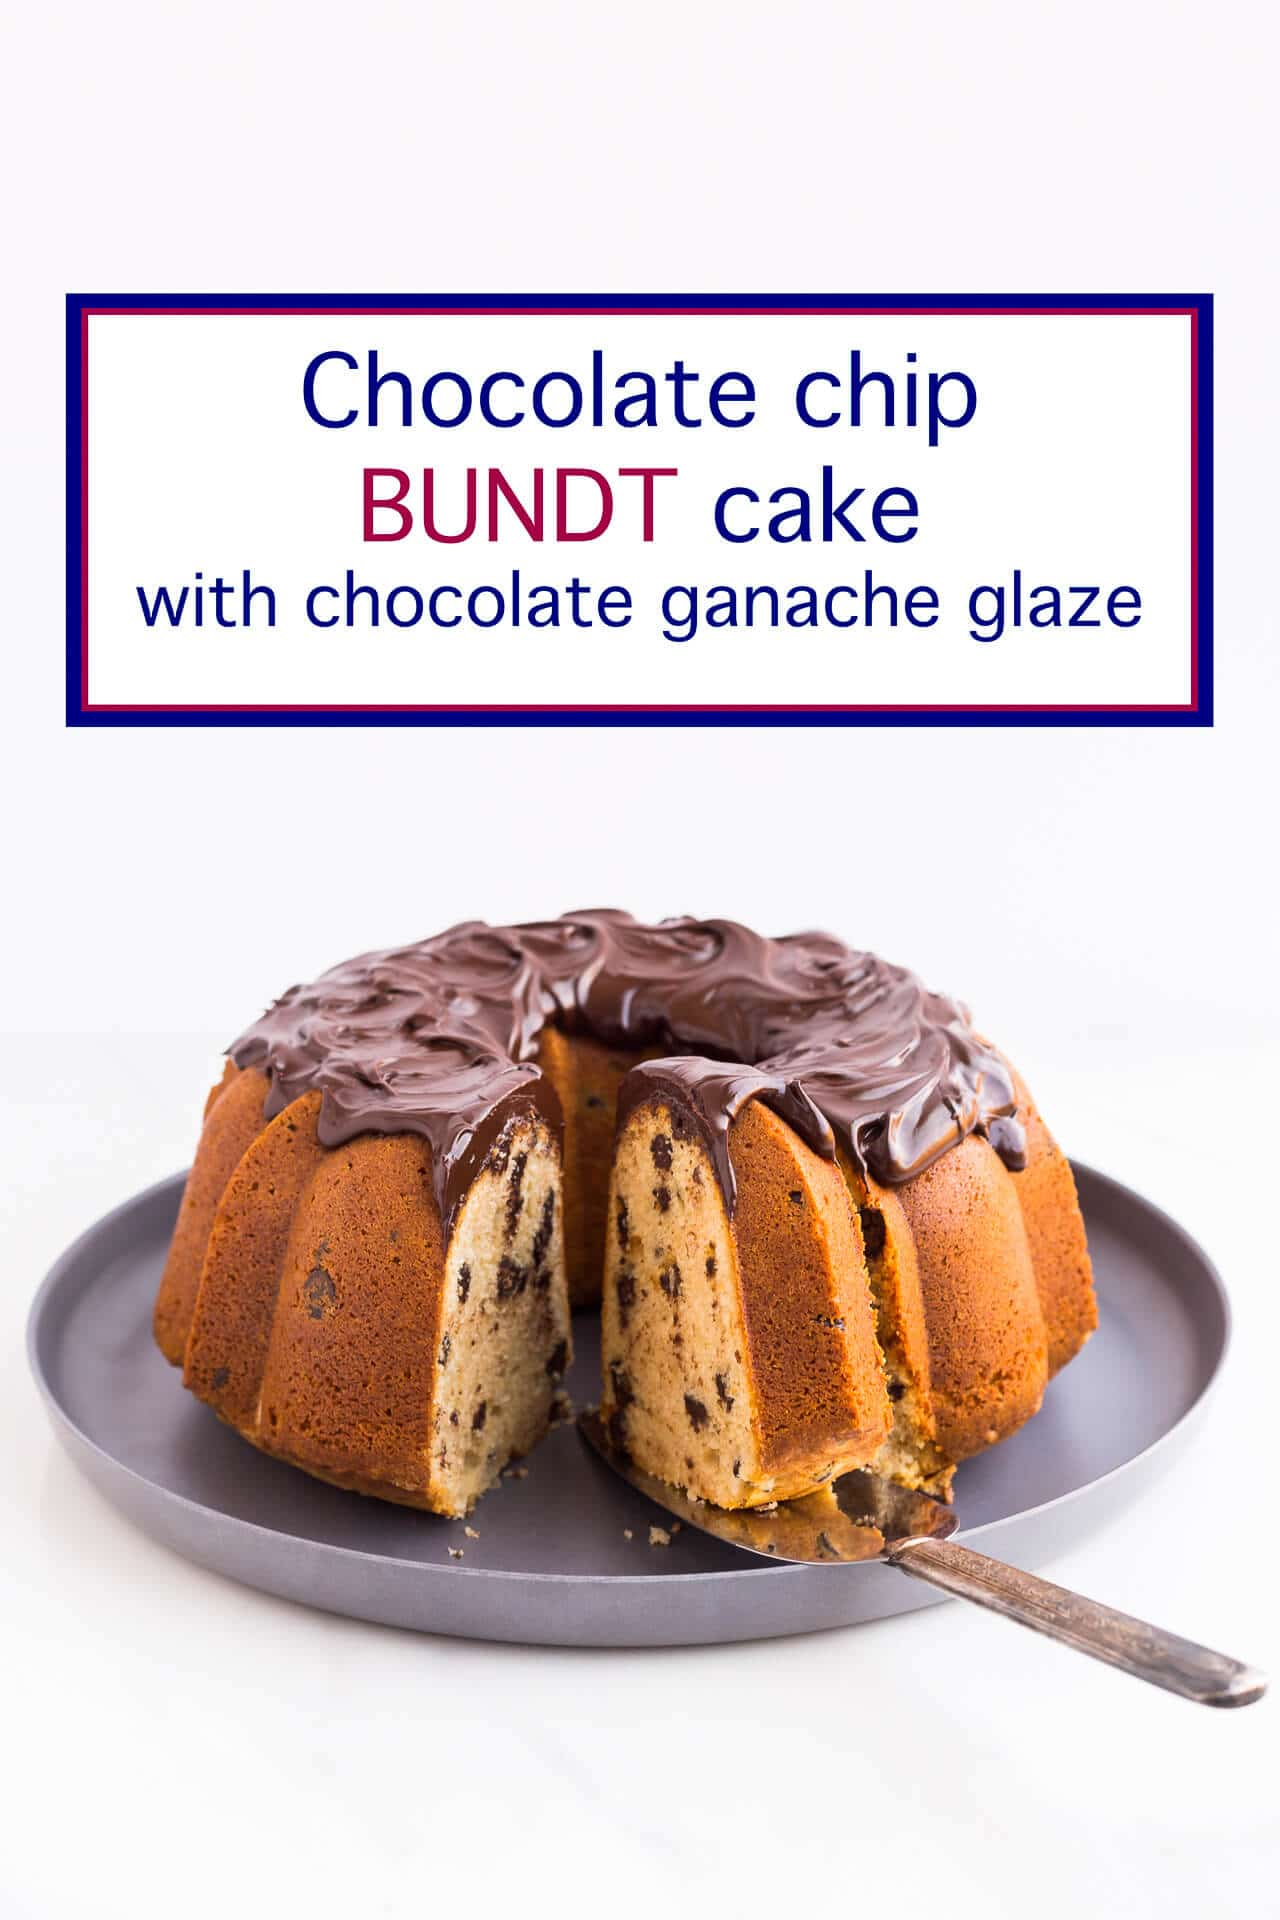 Bundt cake with chocolate chips and swirls of thick chocolate glaze being sliced and served from a grey serving platter